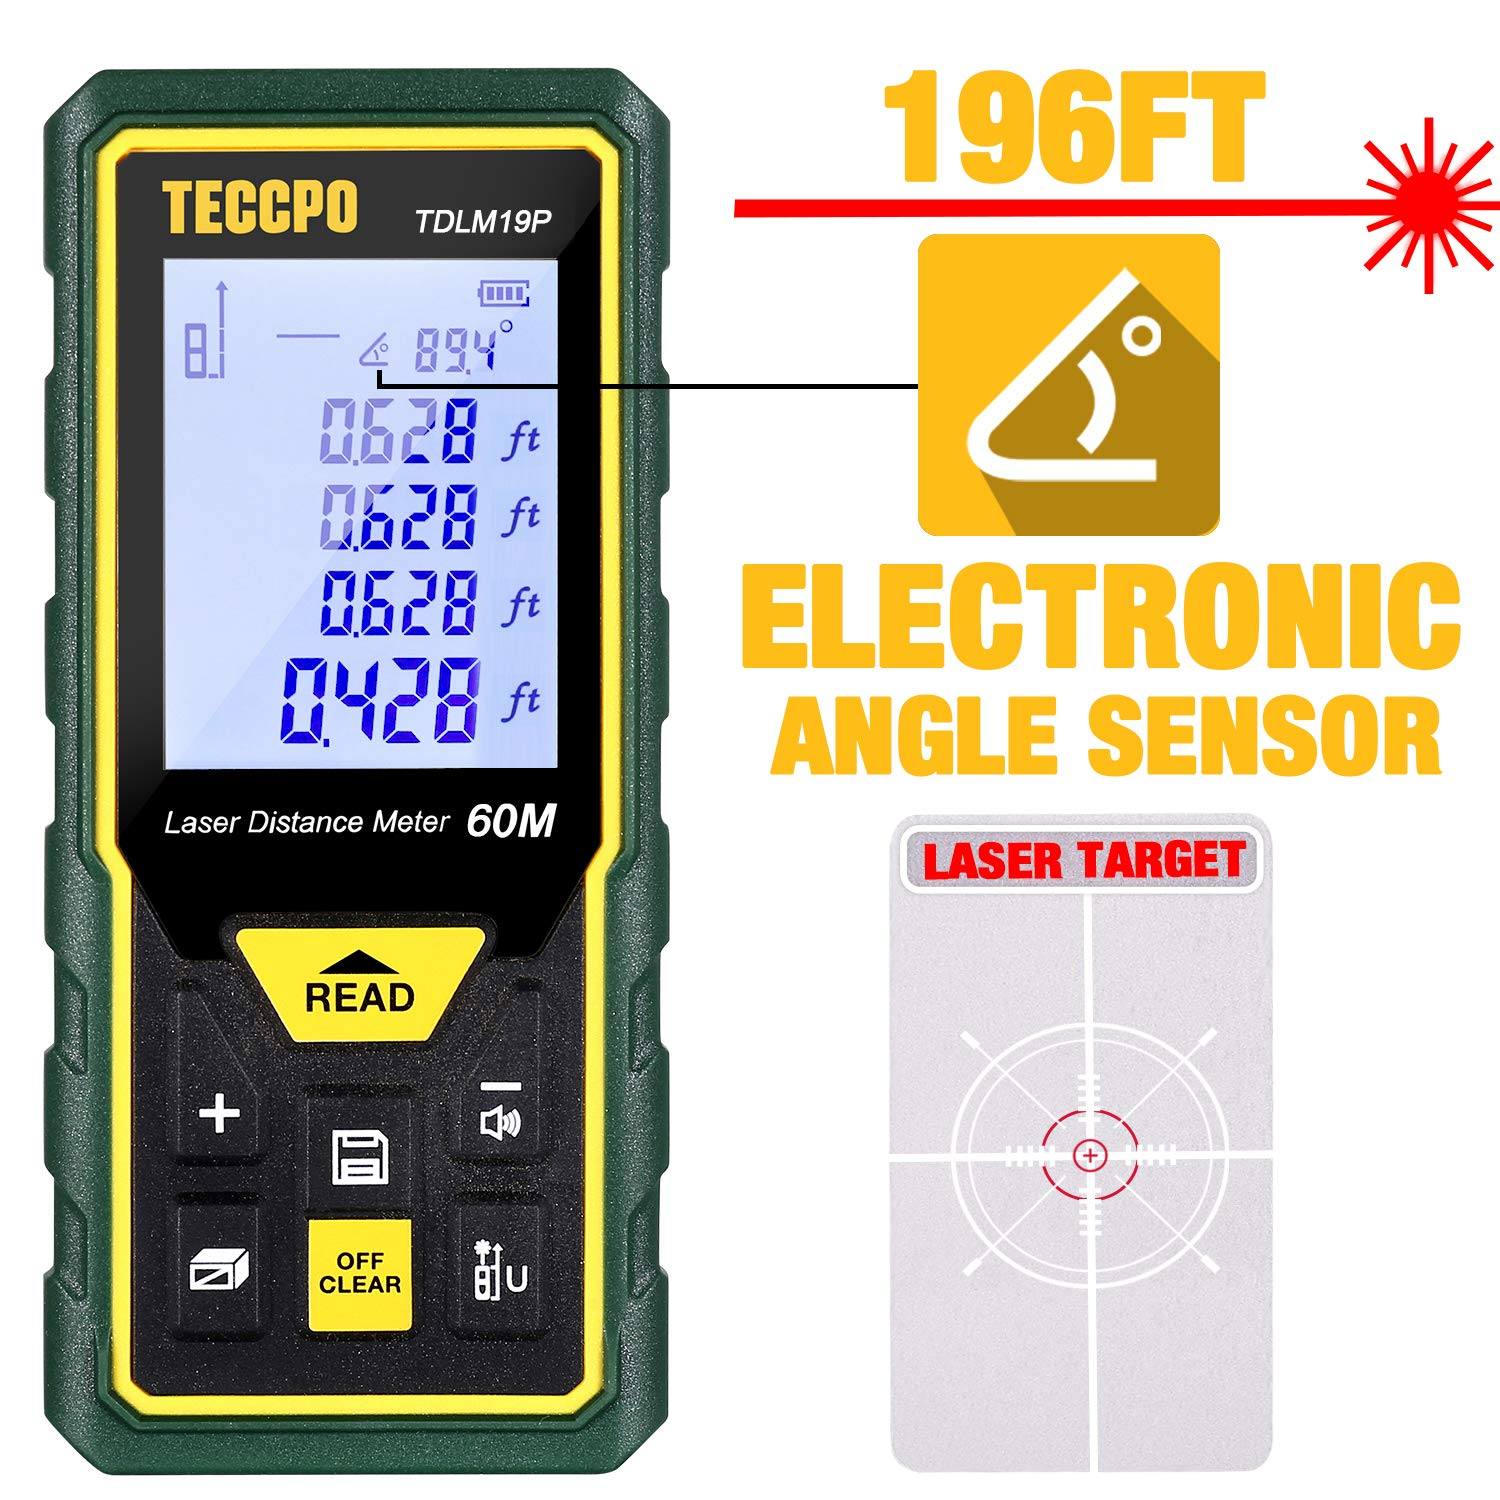 Laser Measure, 196Ft M/In/Ft/Ft+in TECCPO Mute Laser Distance Meter with Electronic Angle Sensor, Backlit LCD and Pythagorean Mode, Measure Distance, Area and Volume, Carry Pouch and Battery Included